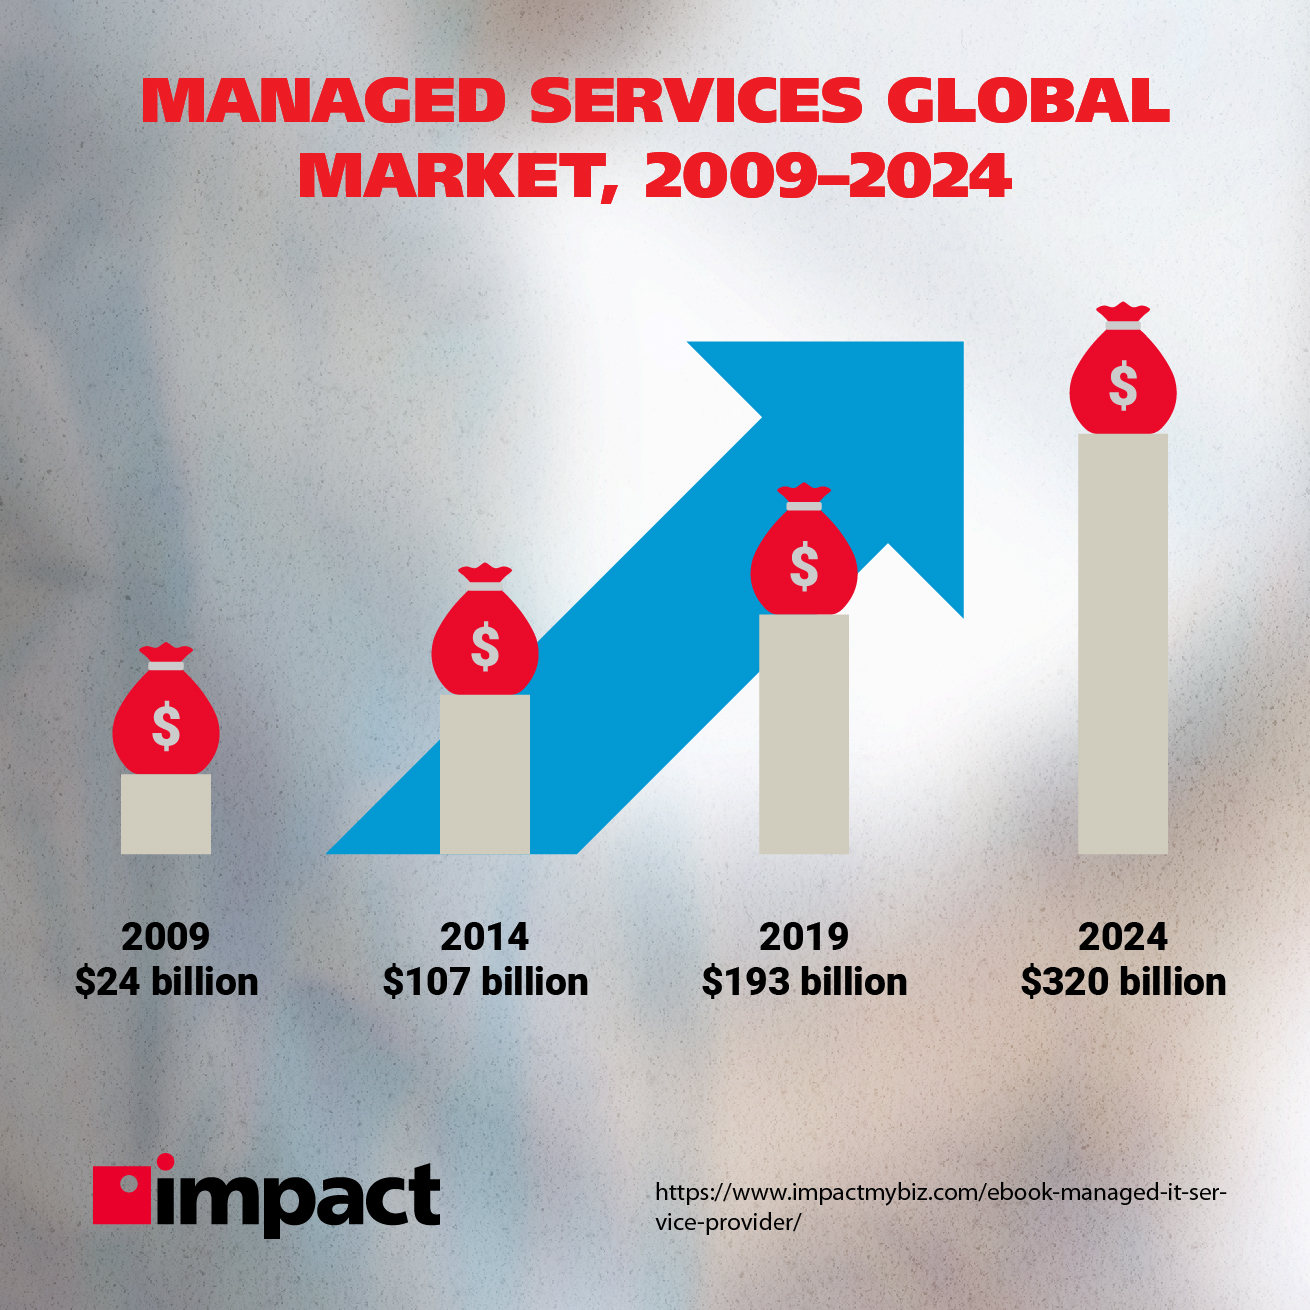 Managed services global market, 2009-2024